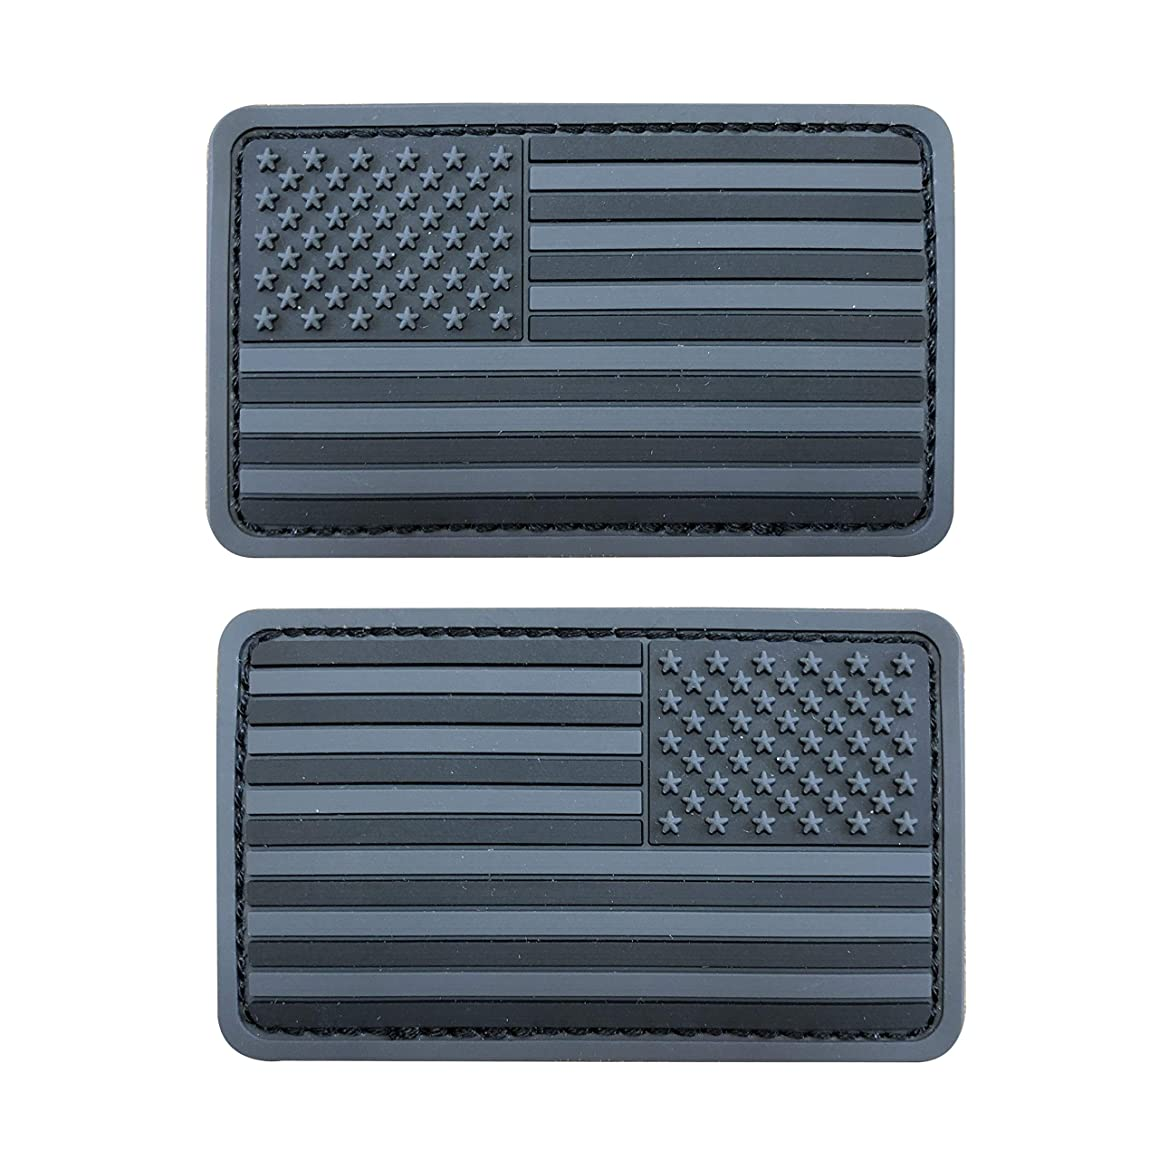 2x3.5 inch 3D PVC Rubber Black Grey US USA American Flag Patch Hook-Fastener Backing (Forward and Reversed)